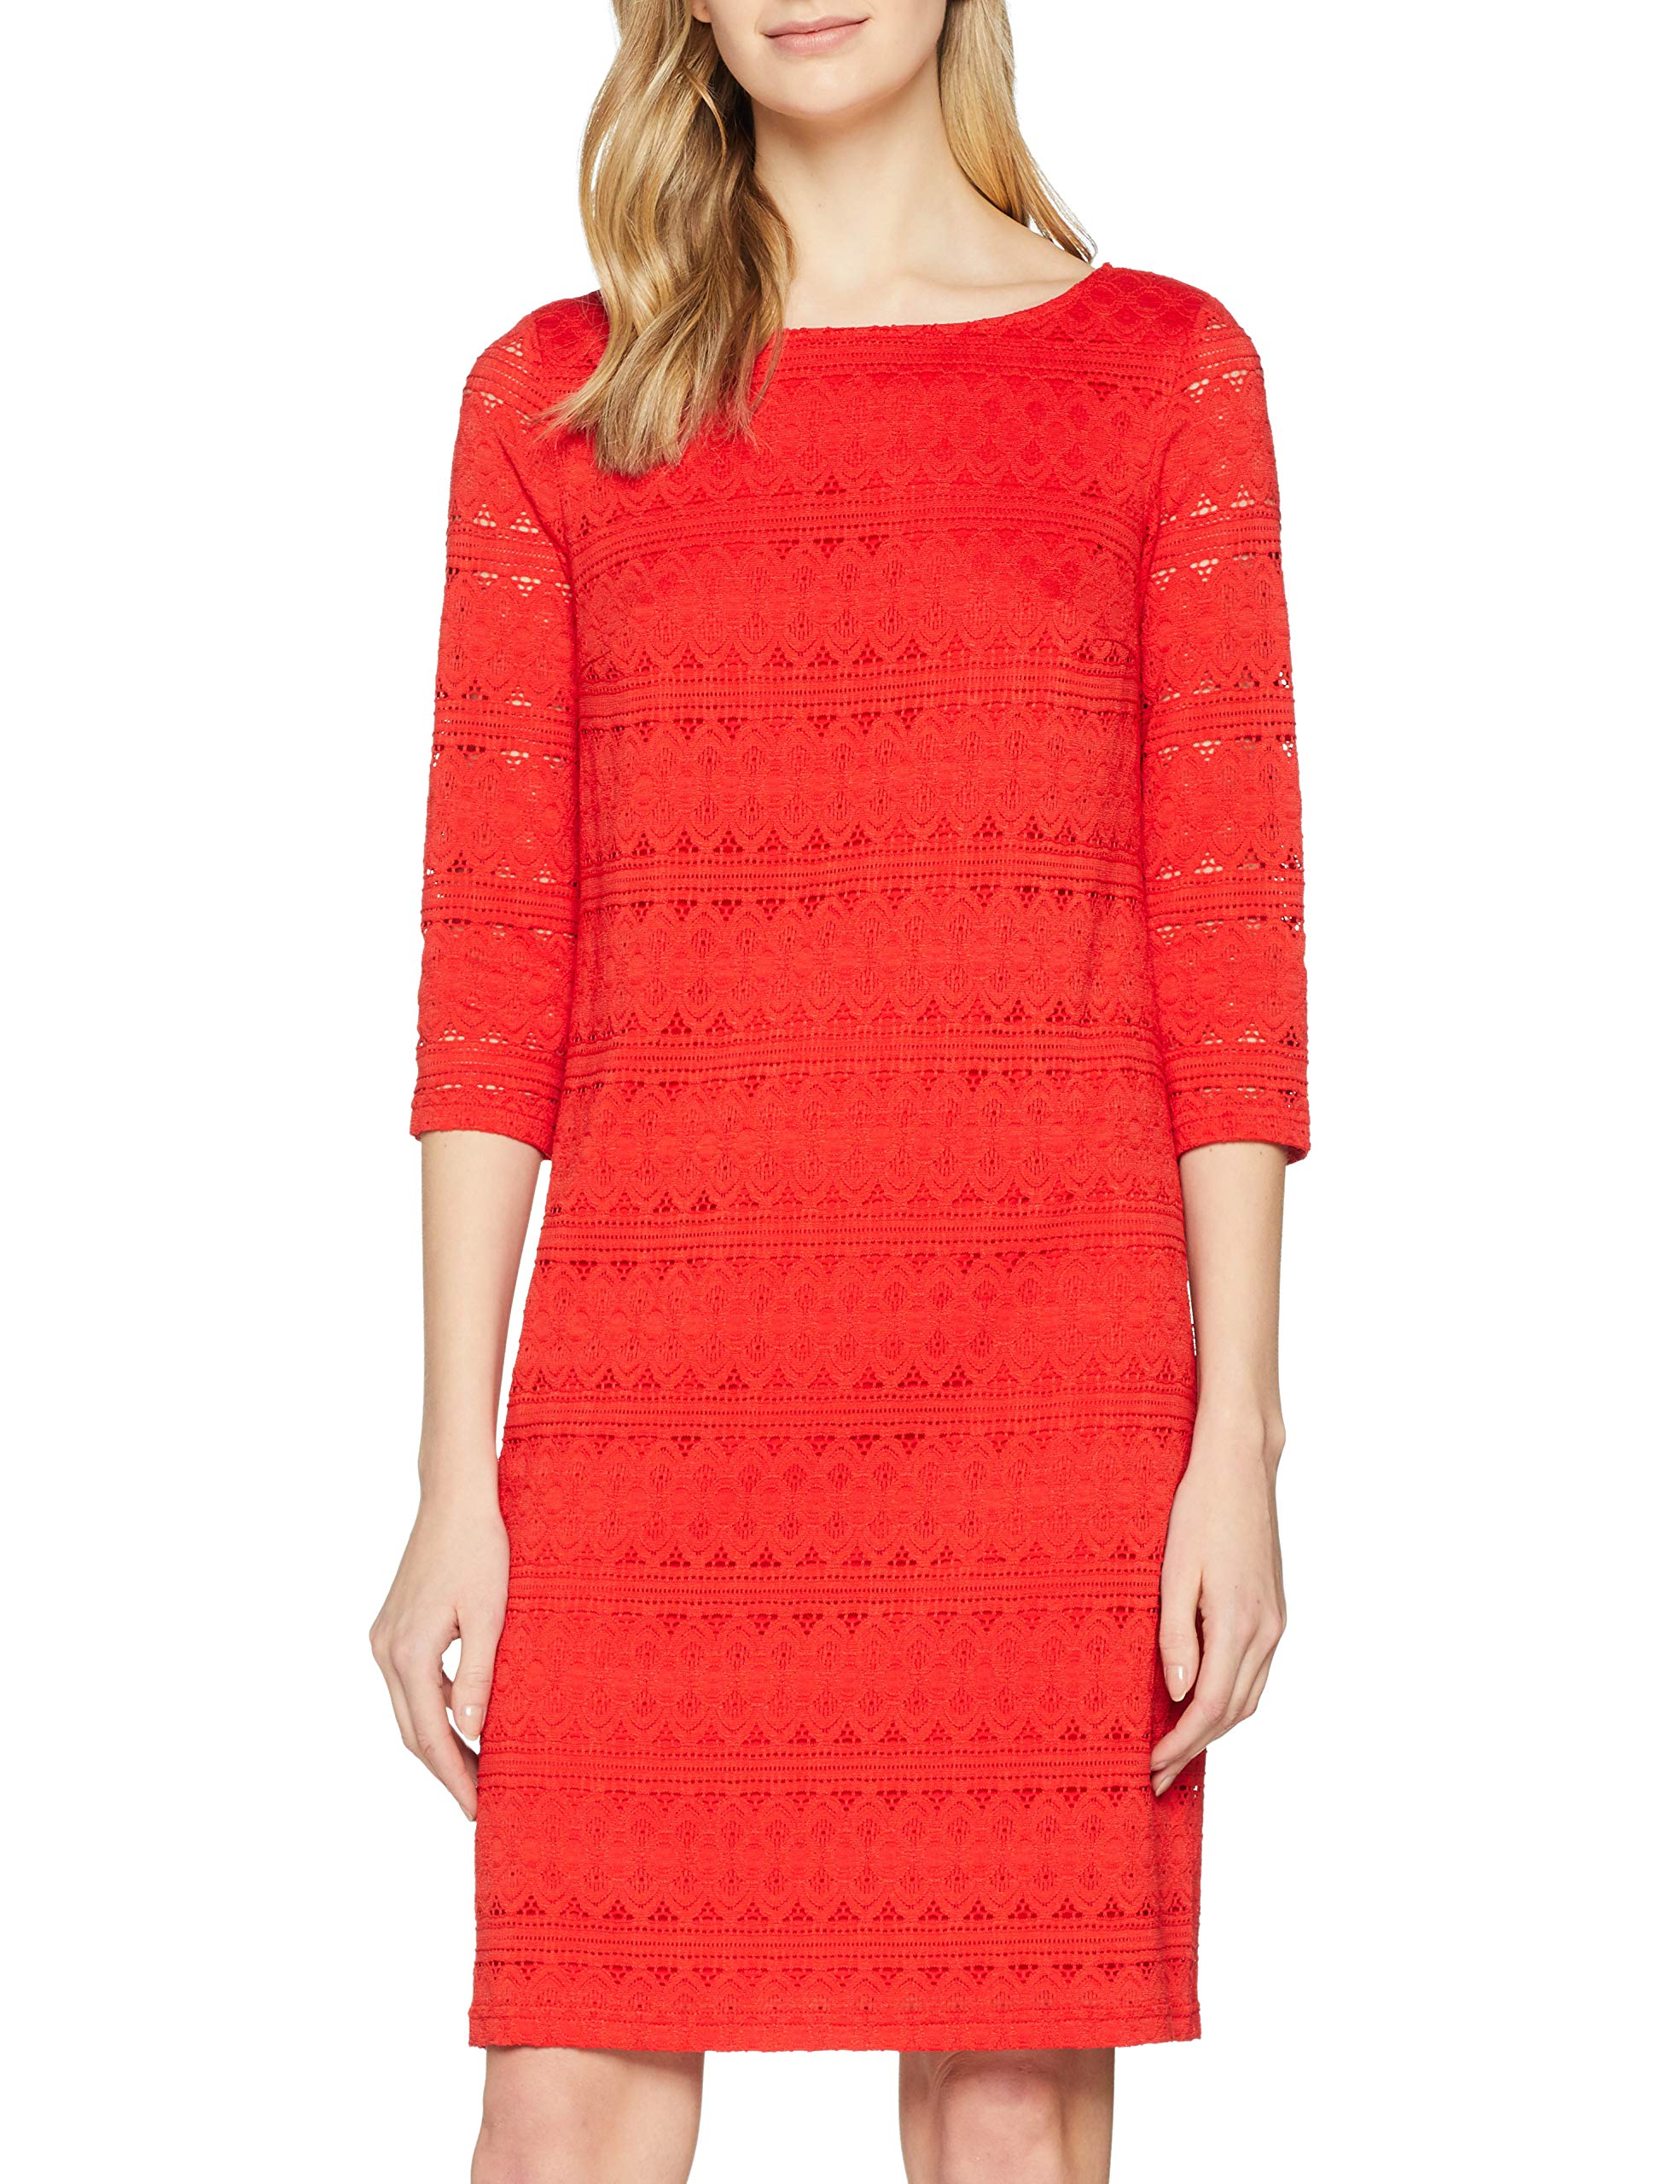 Red 2652 3969 407442taille RobeRougehibiscus Betty Fabricant40Femme Barclay EDIHbeY2W9